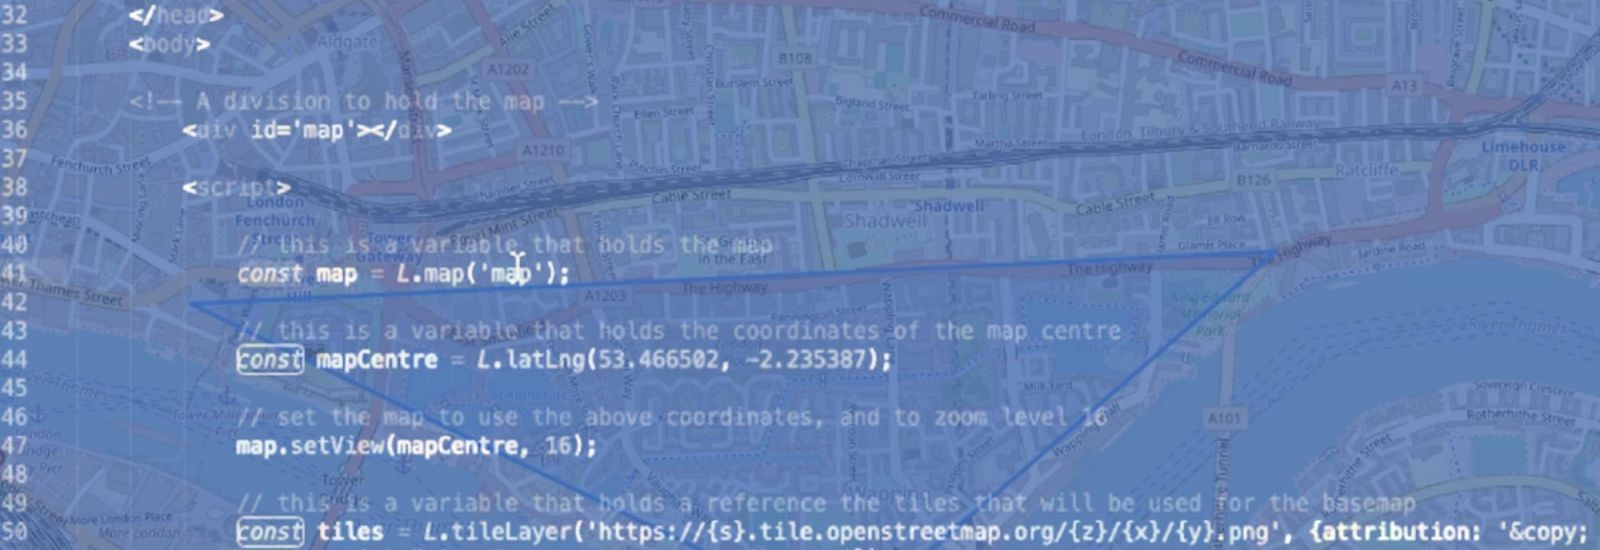 A digital map of London overlayed with a blue colour and coding language in white